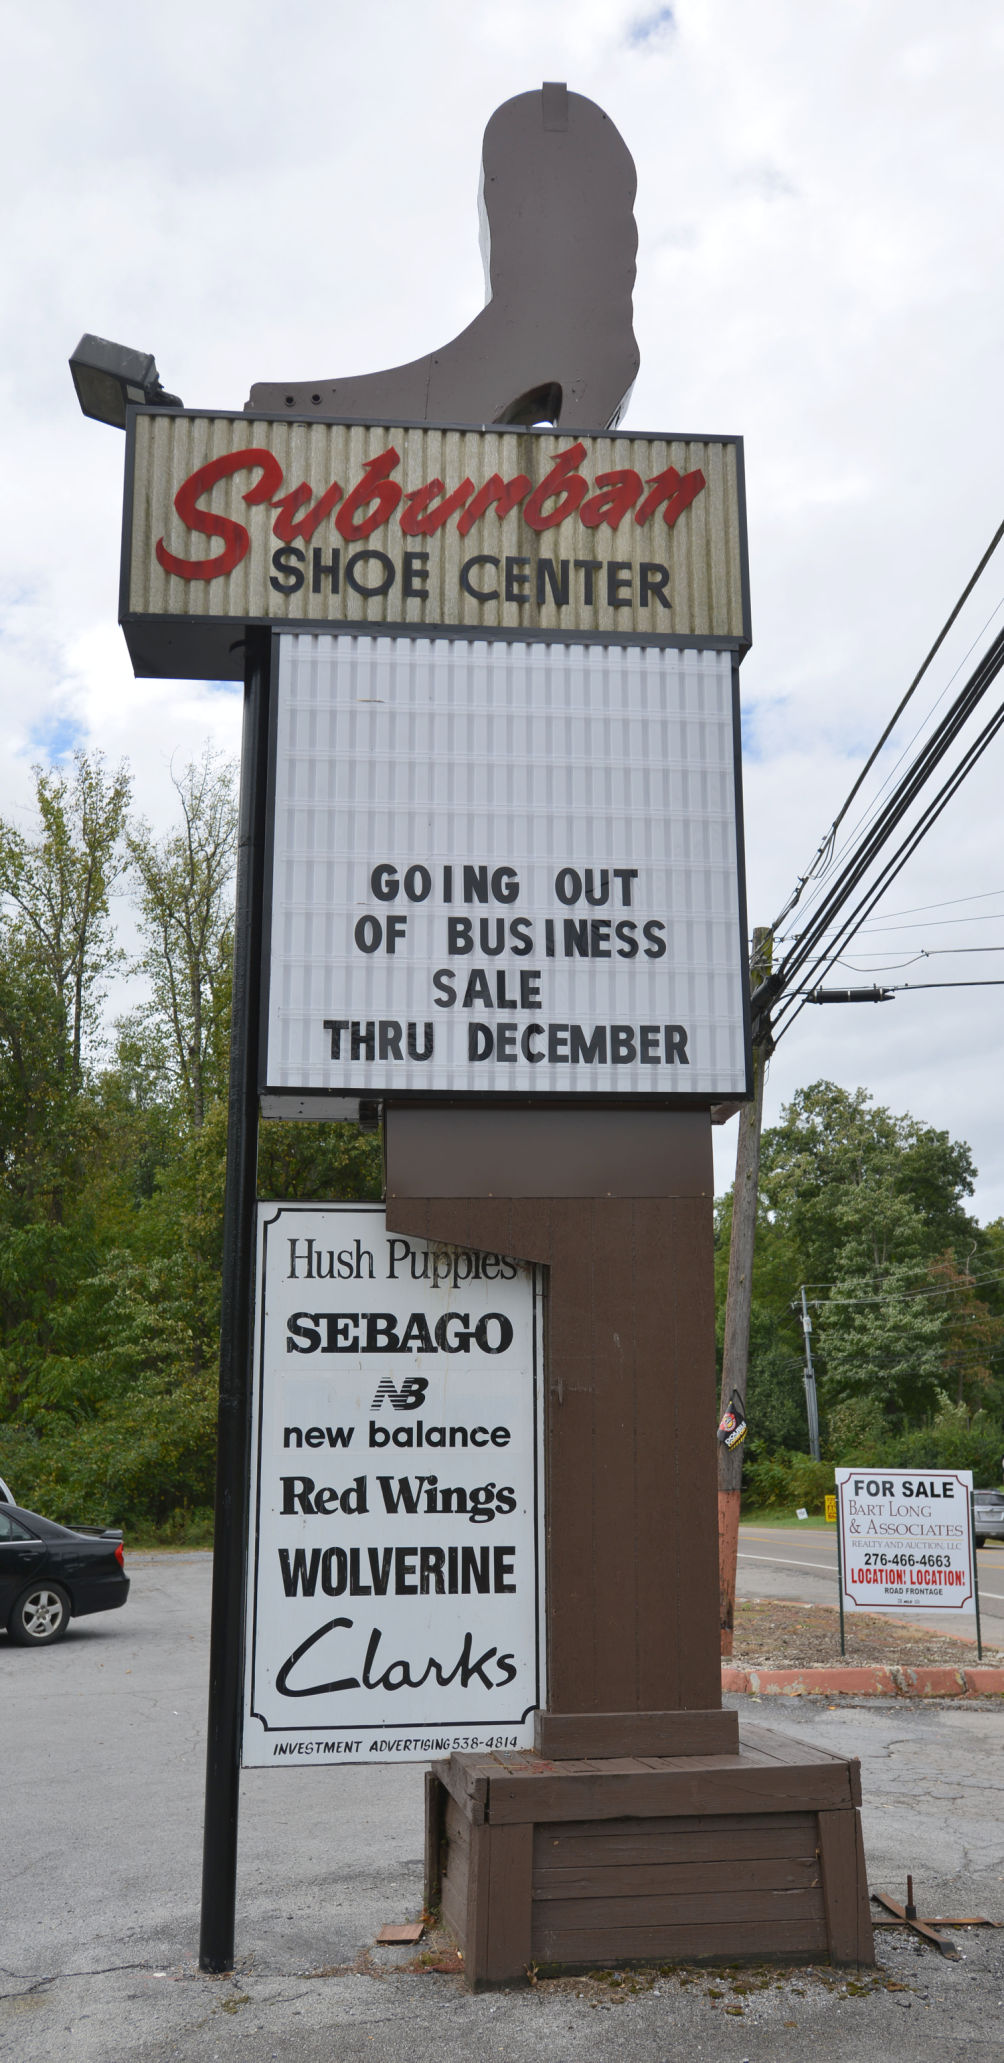 Suburban Shoe Center Inc in Bristol, VA -- Get driving directions to Georgia St Bristol, VA Add reviews and photos for Suburban Shoe Center Inc. Suburban Shoe Center Inc appears in: Shoe .